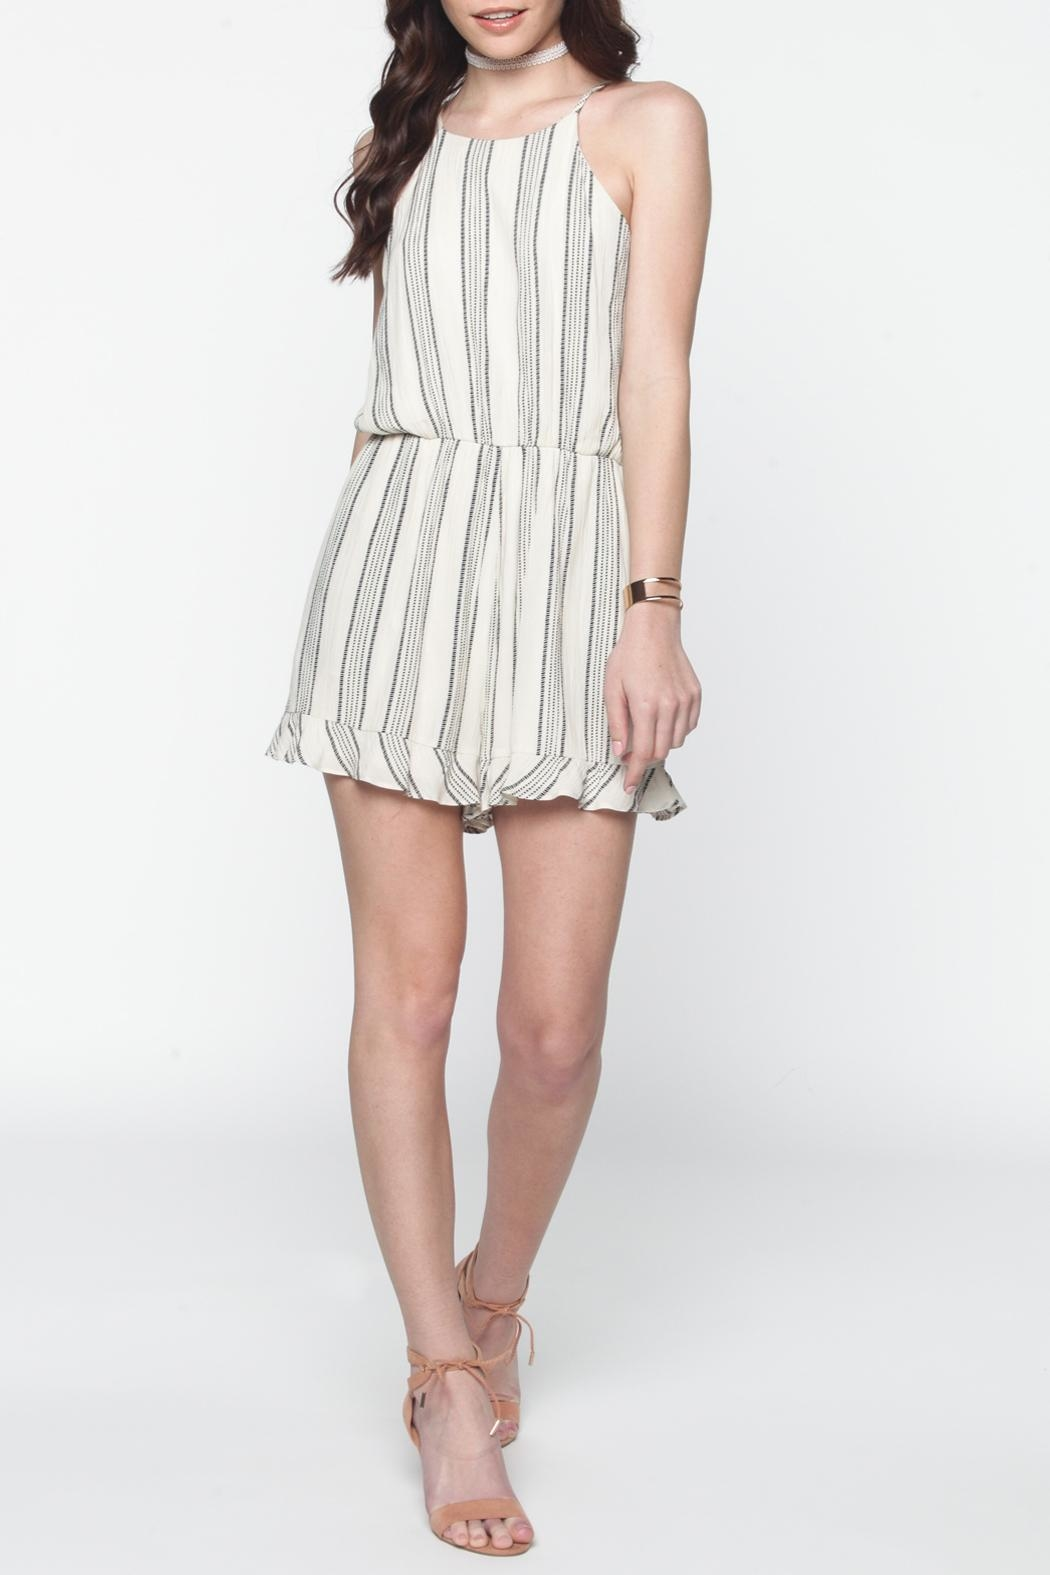 Everly Ivory Striped Romper - Side Cropped Image